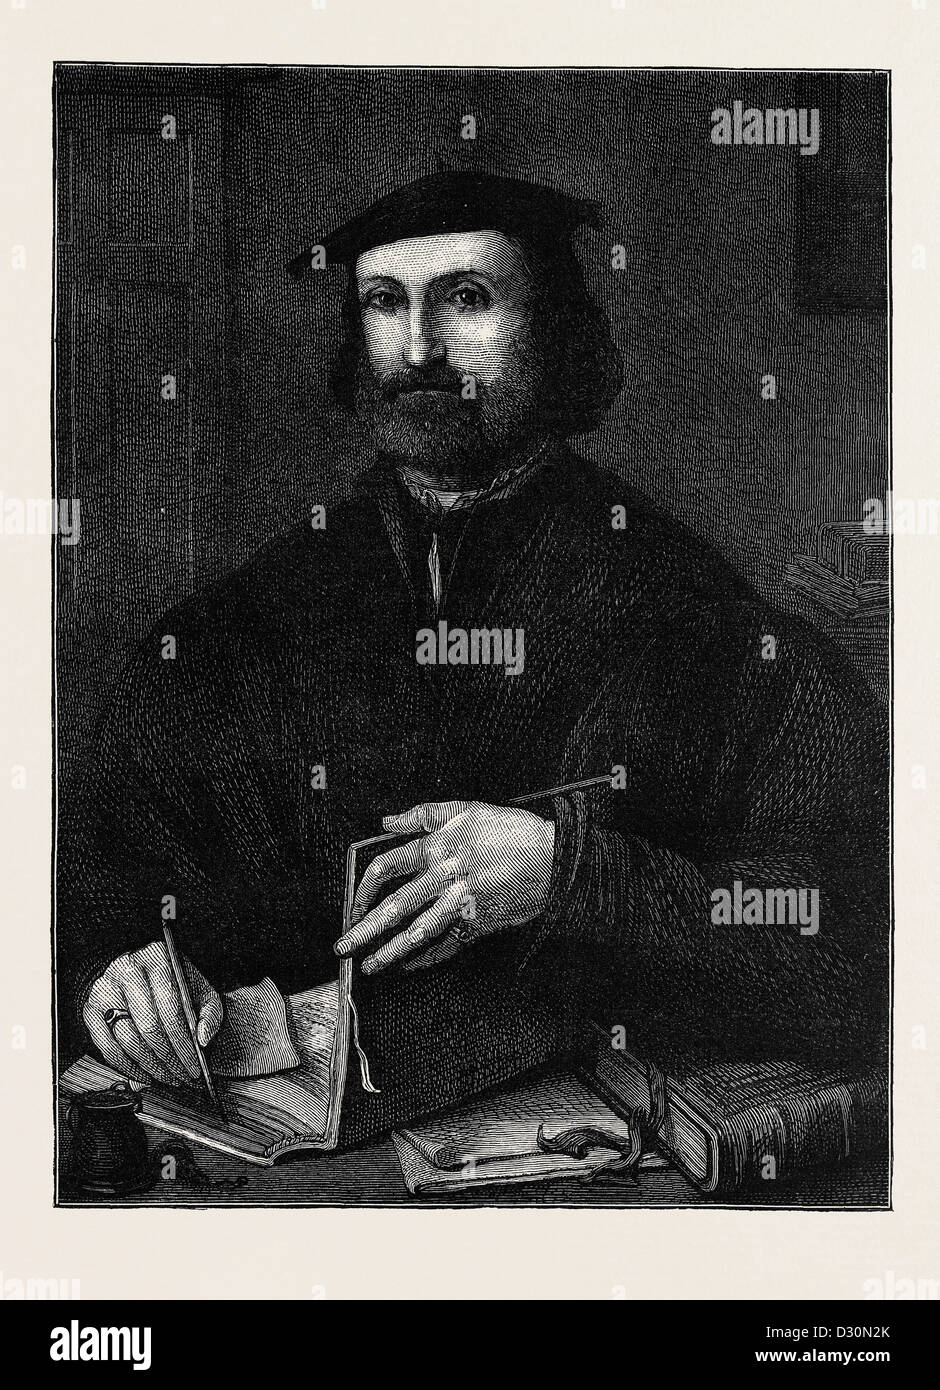 LUDOVICO ARIOSTO, BORN SEPTEMBER 8, 1474; DIED JUNE 6, 1533 Stock Photo